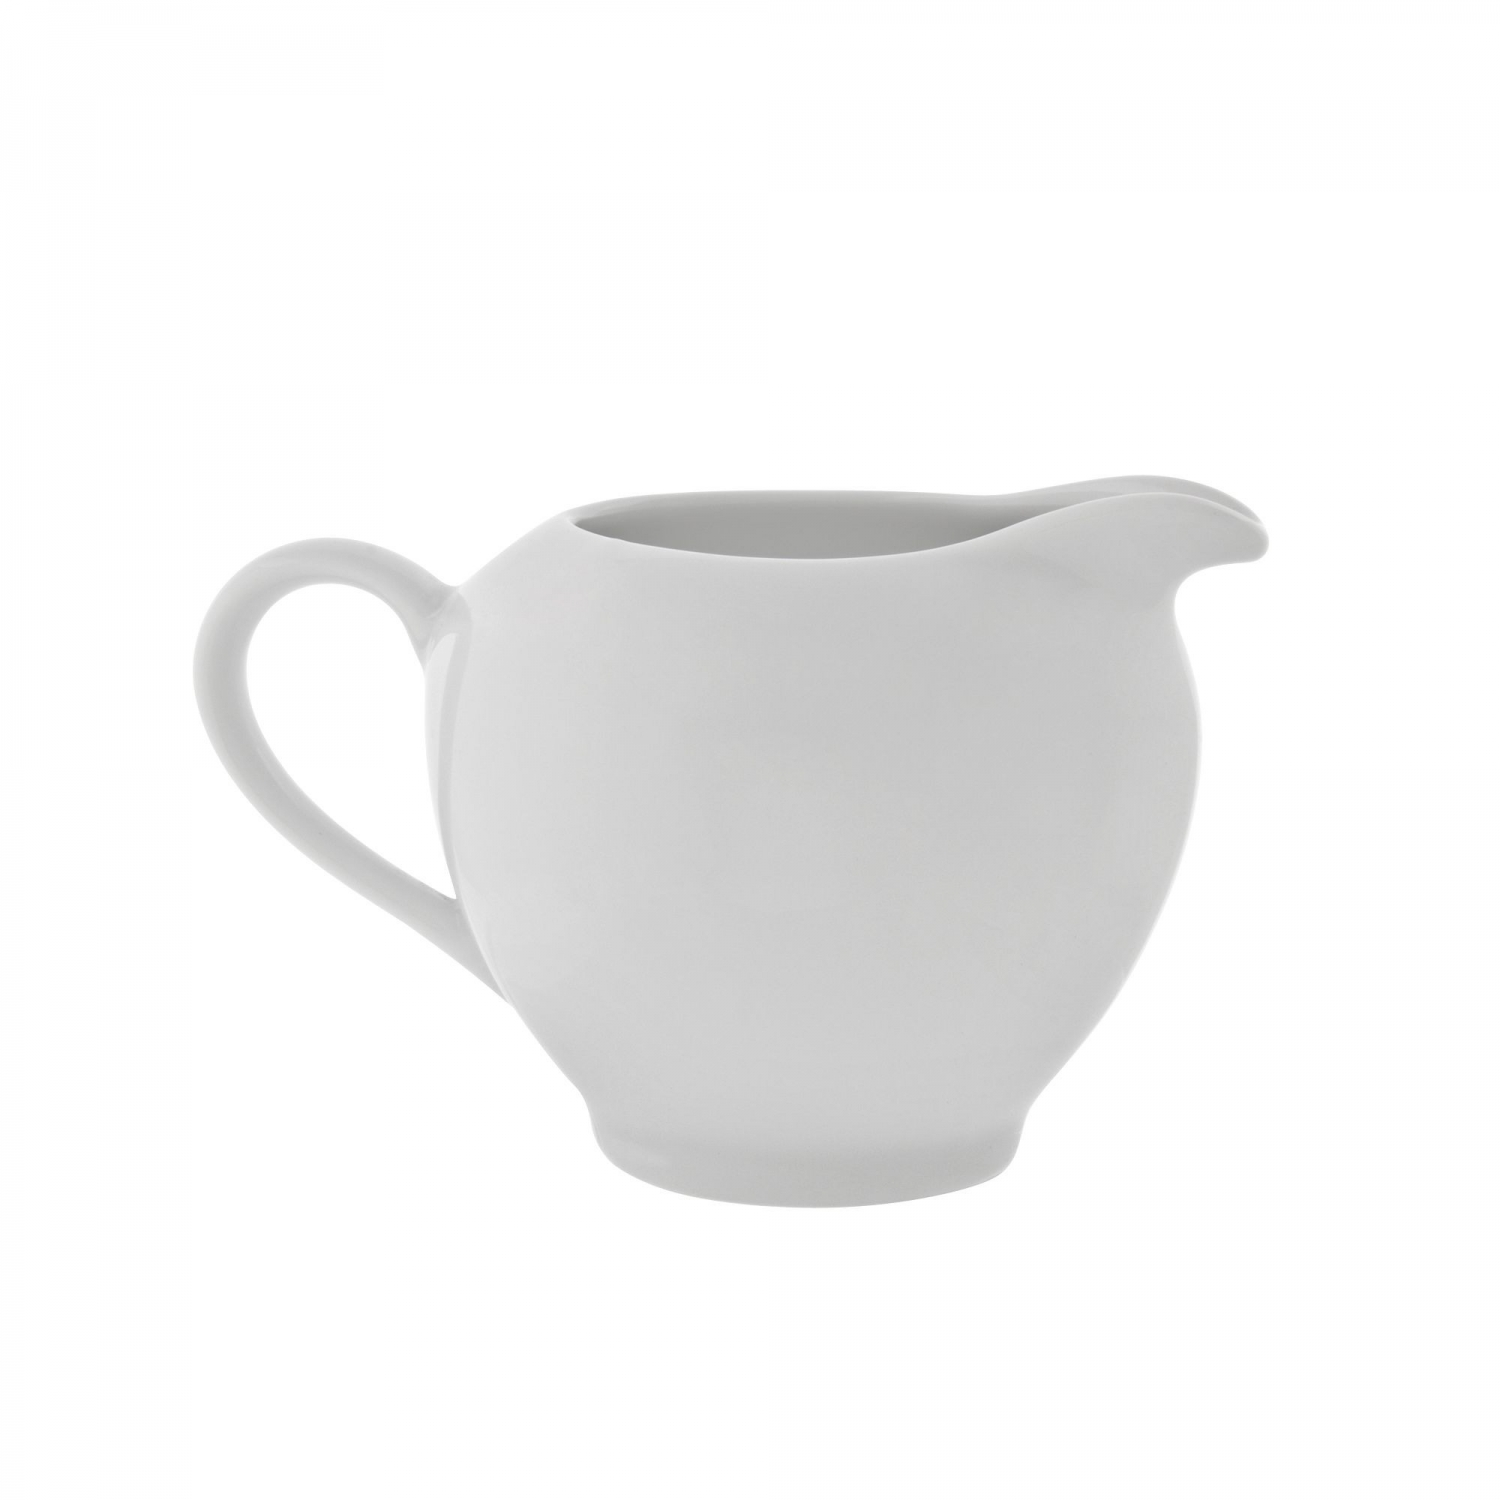 10 Strawberry Street WTR-16 Whittier Creamer 11 oz.